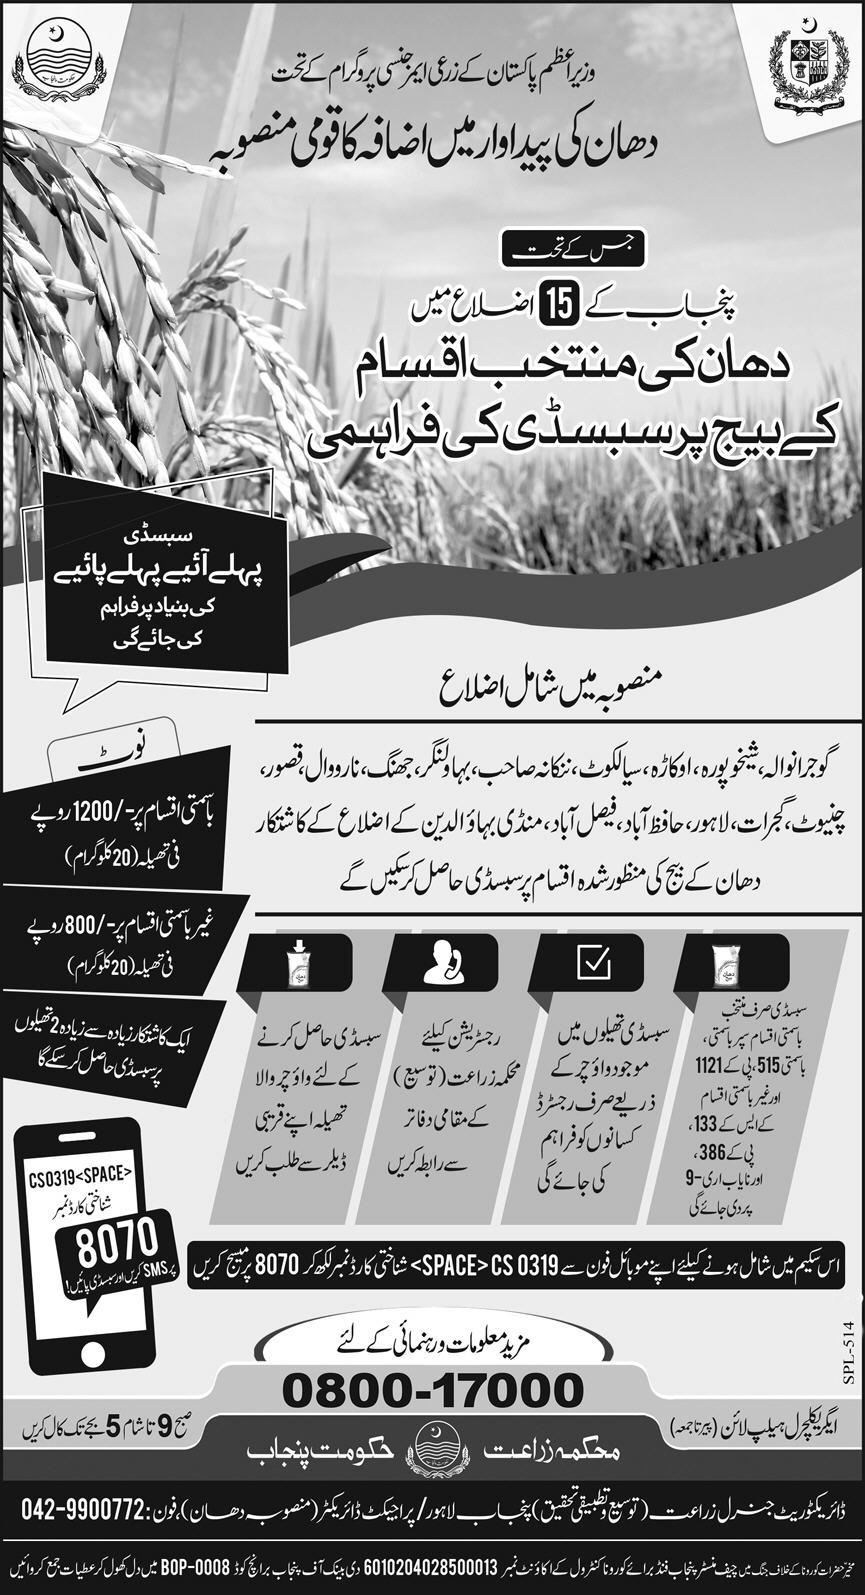 PM Agriculture Emergency Program